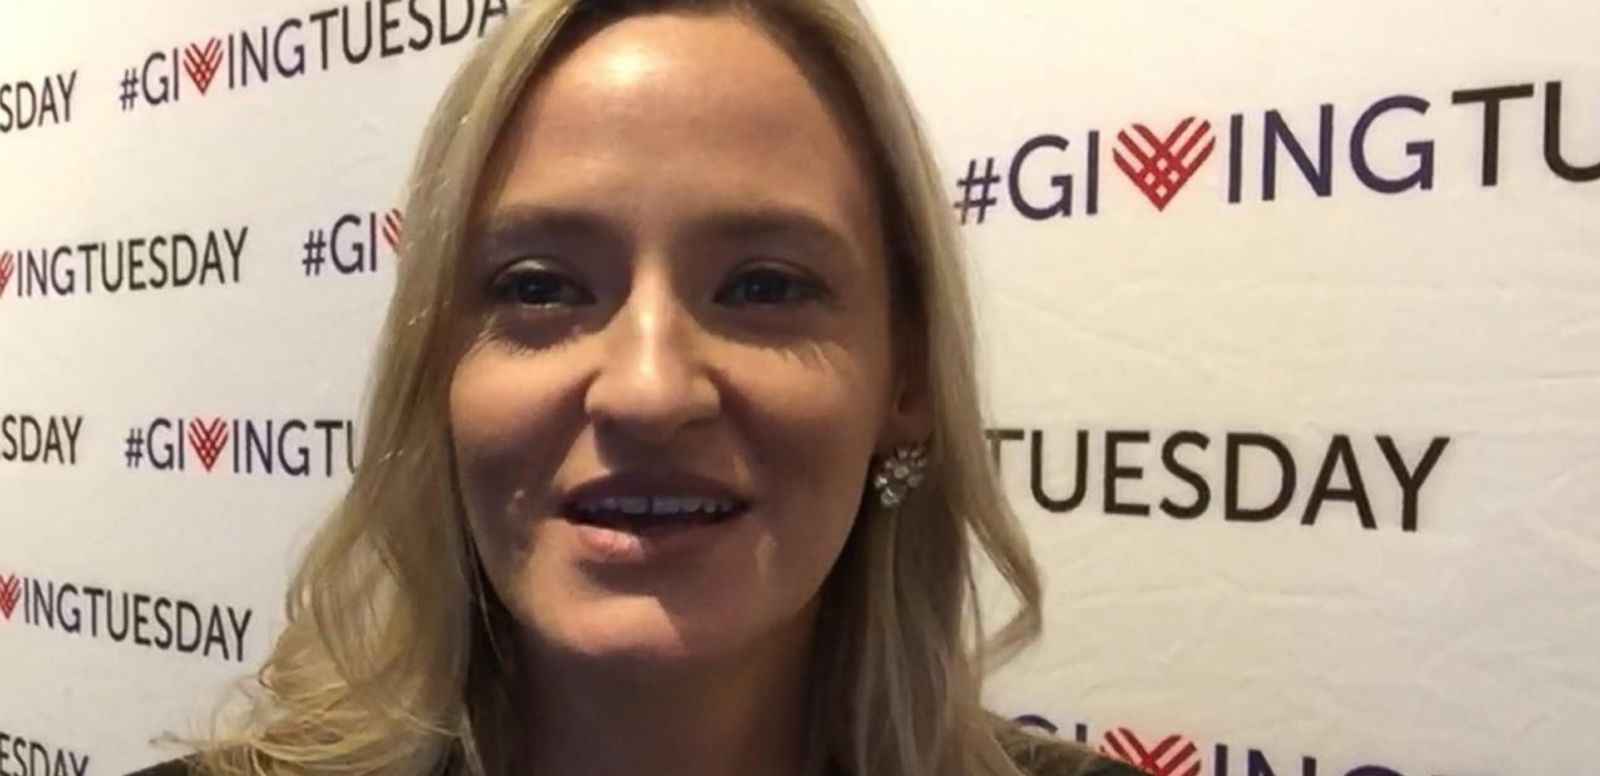 VIDEO: It's Giving Tuesday!